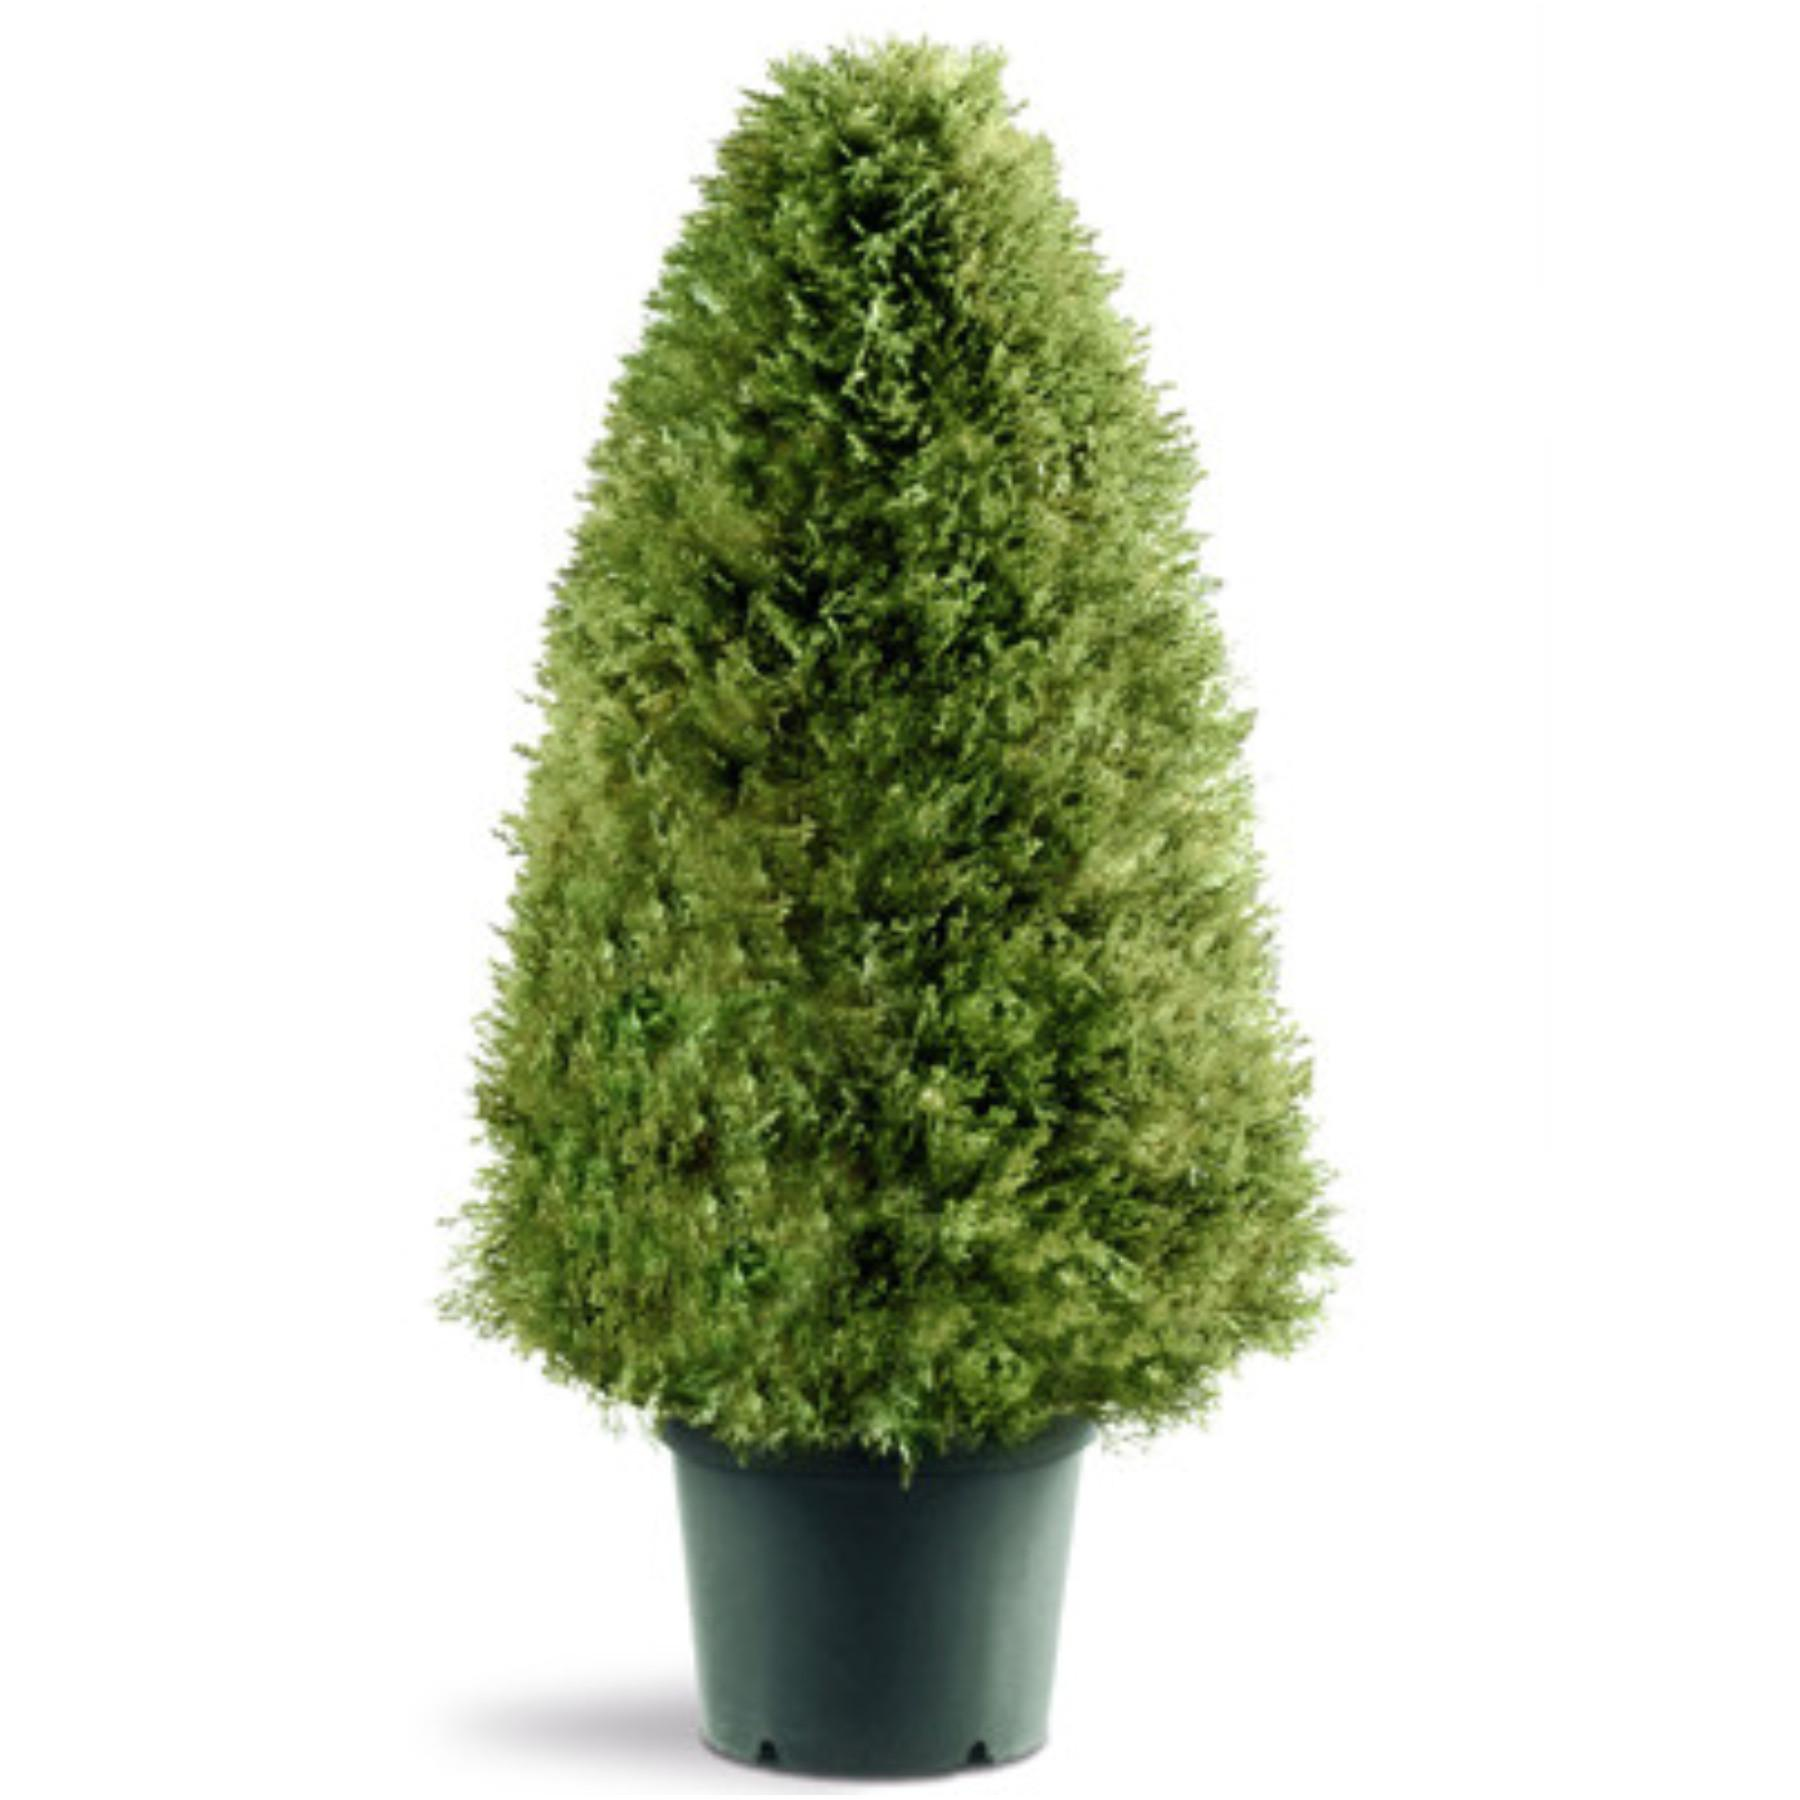 National Tree Potted Artificial Rounded Triangular